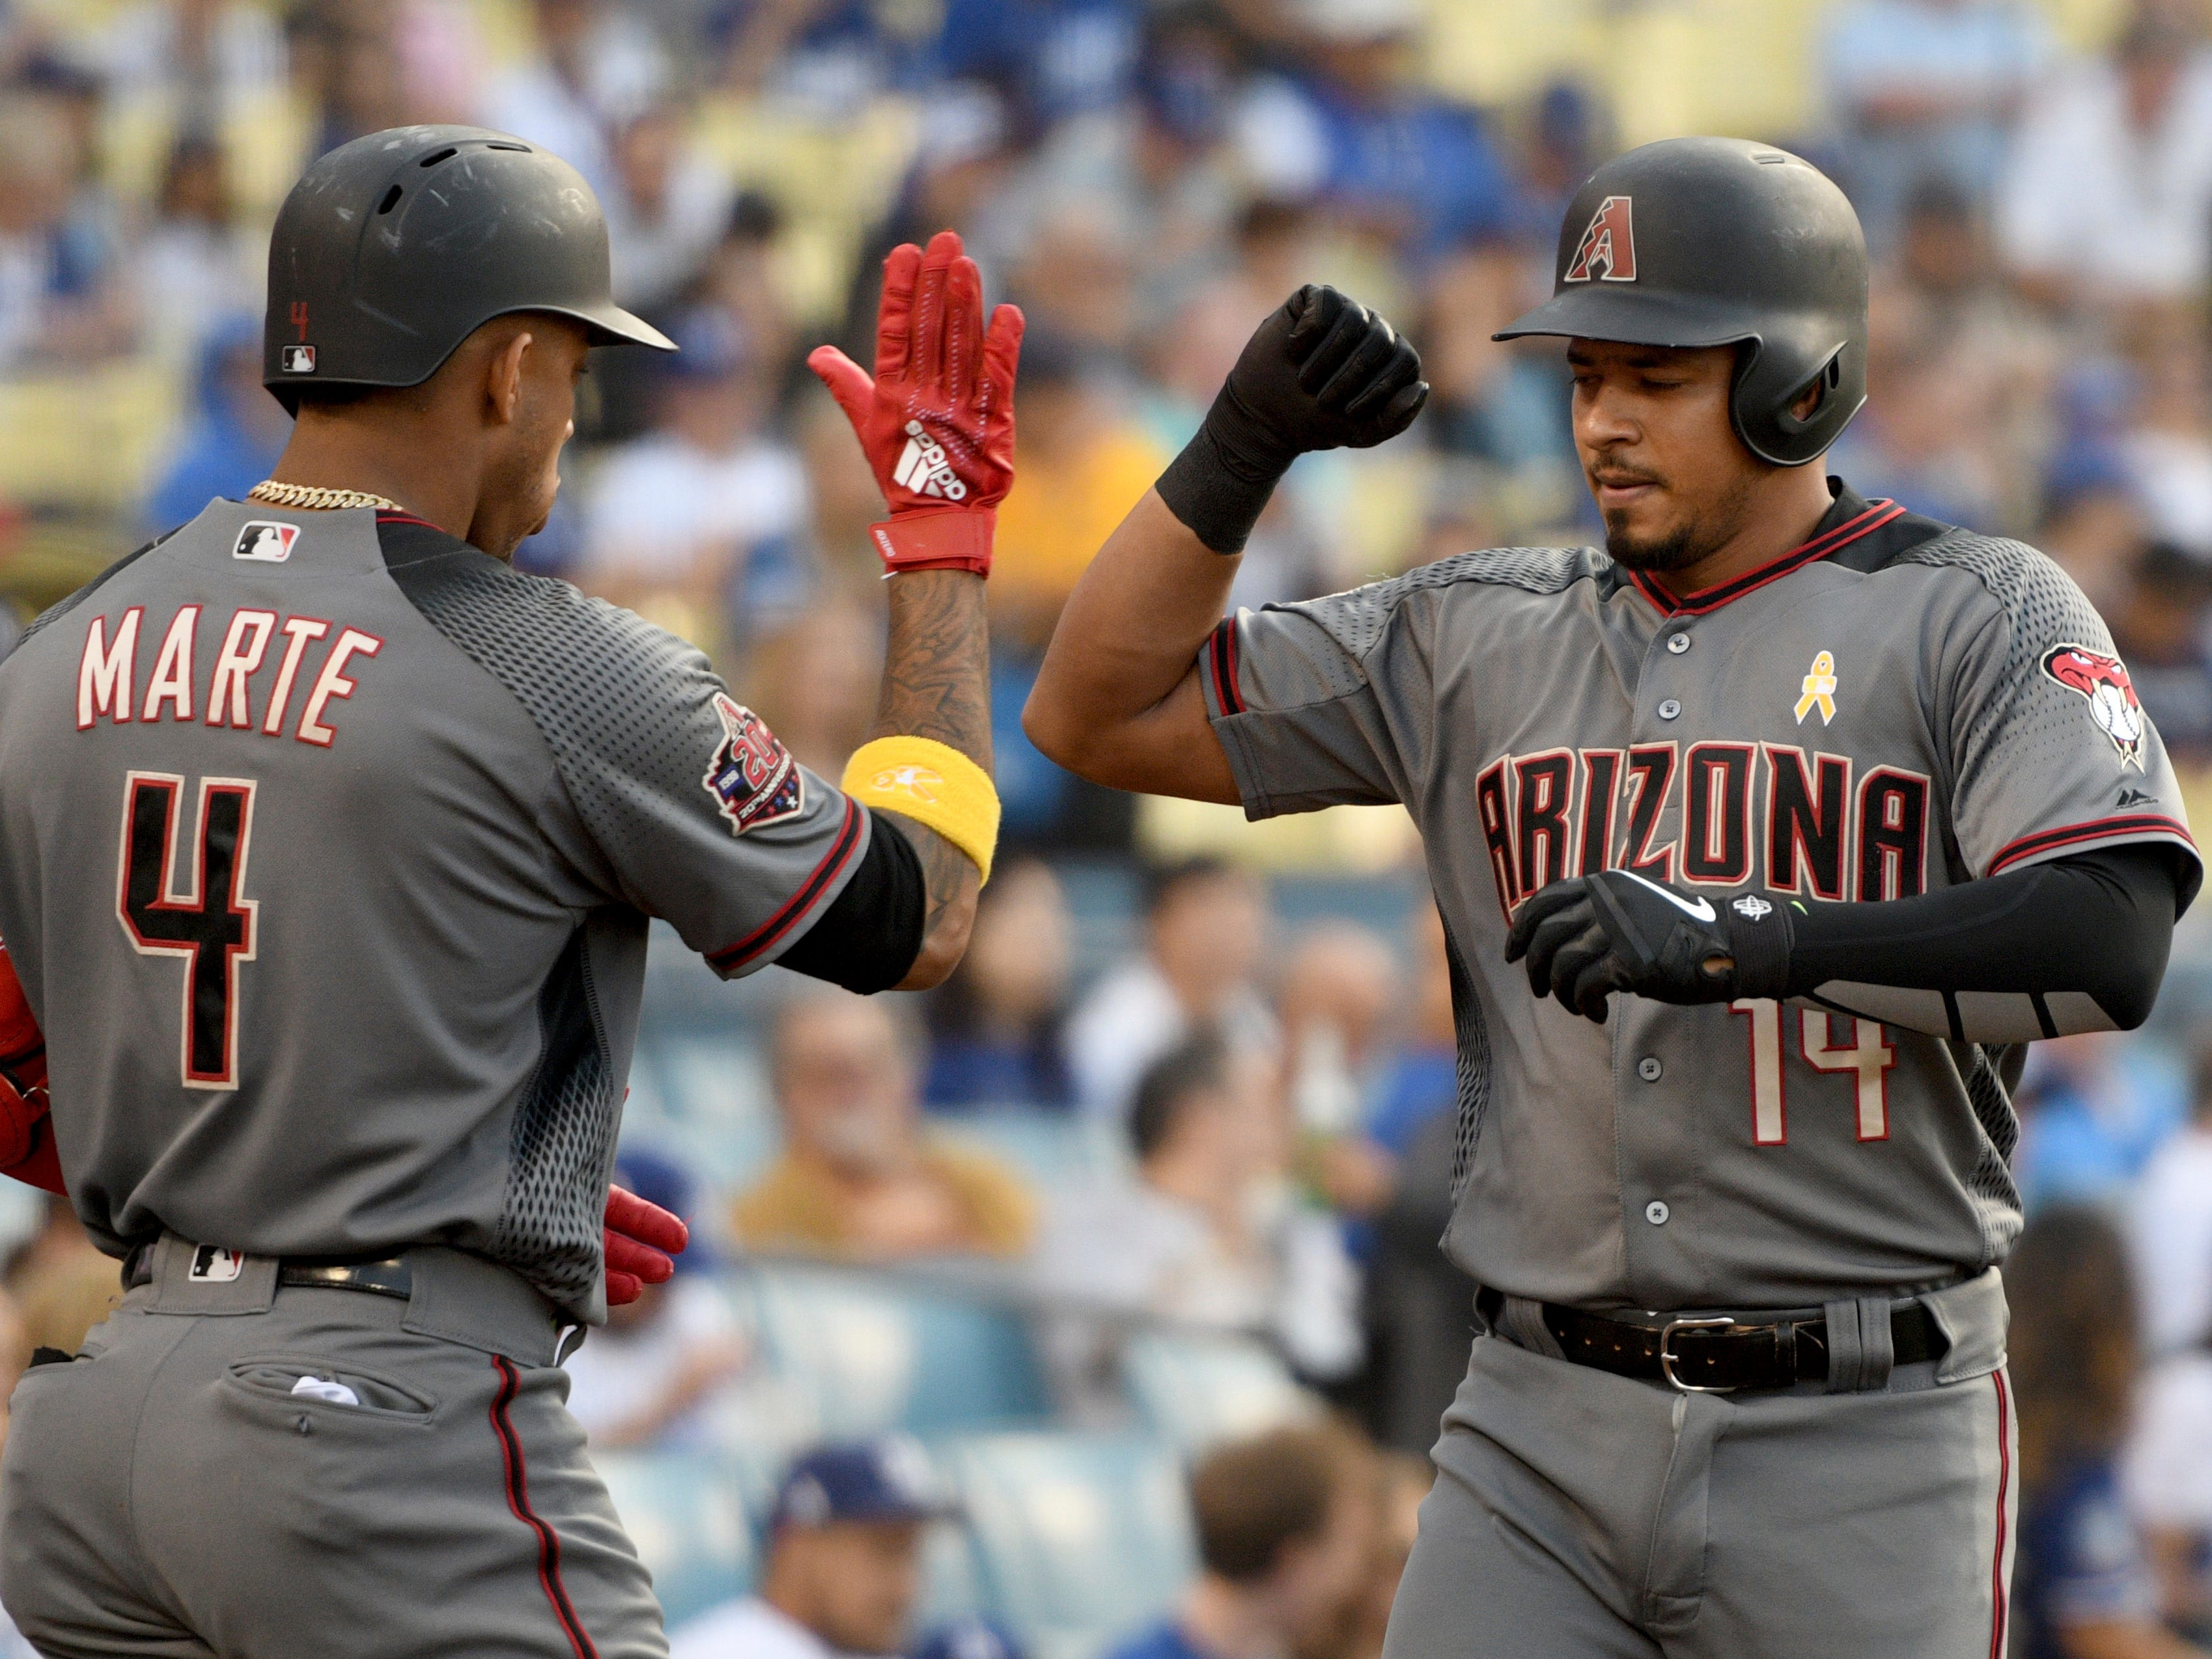 Arizona Diamondbacks' Eduardo Escobar, right, is congratulated by Ketel Marte after Escobar hit a solo home run during the second inning of a baseball game against the Los Angeles Dodgers, Saturday, Sept. 1, 2018, in Los Angeles.